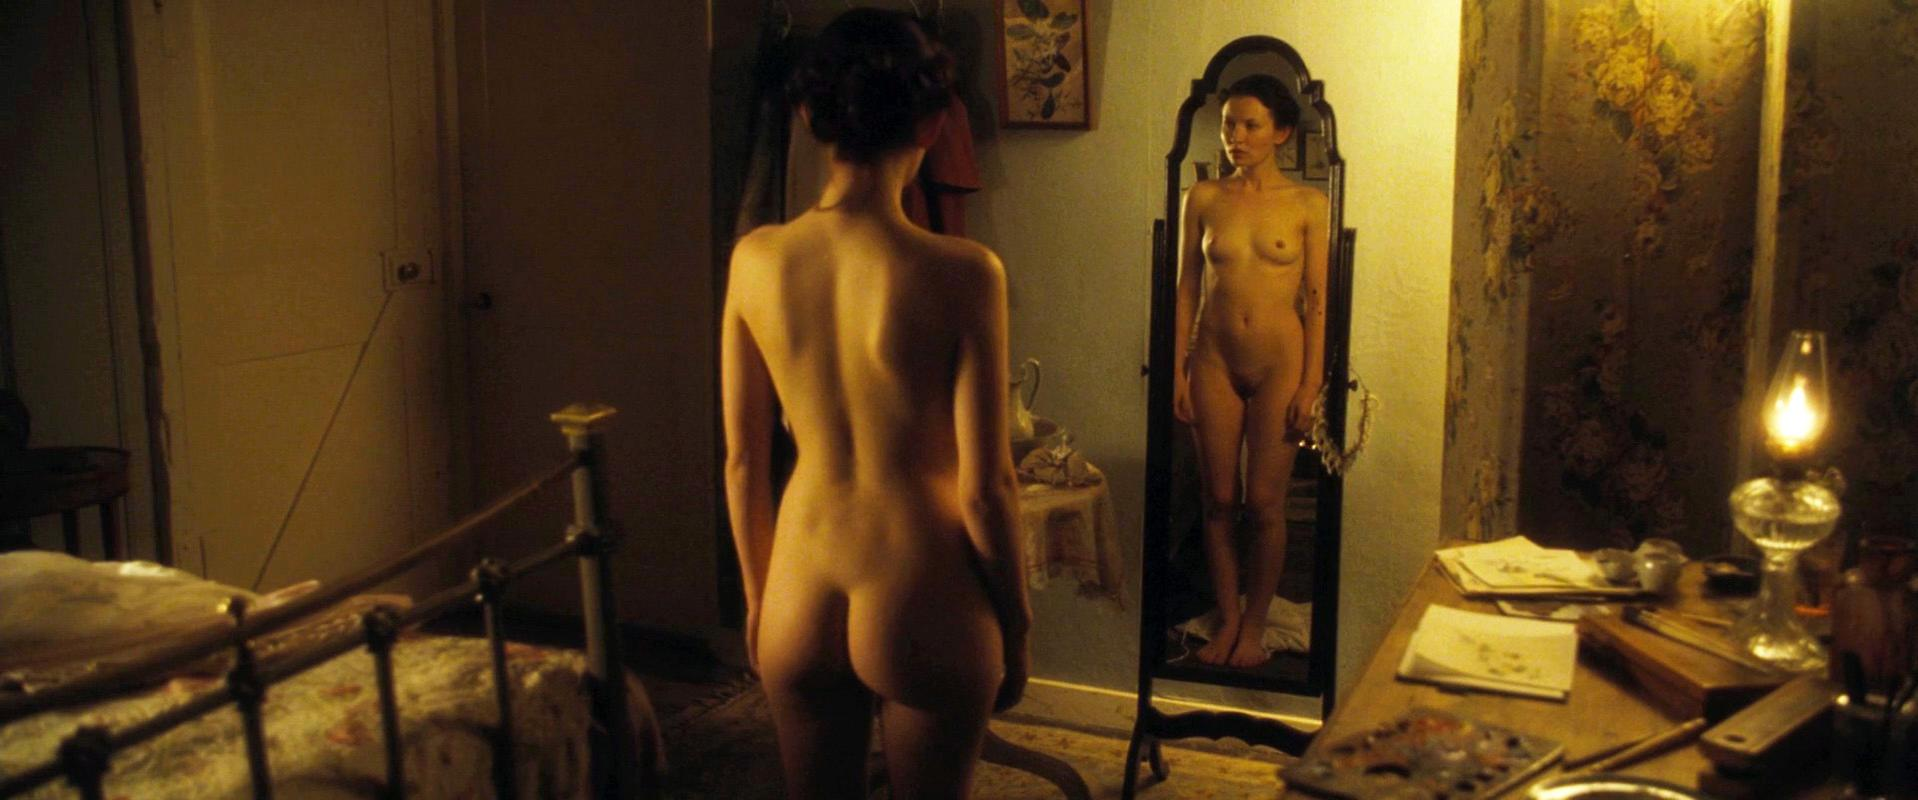 Emily Browning nude, Mia Austen nude - Summer in February (2013)